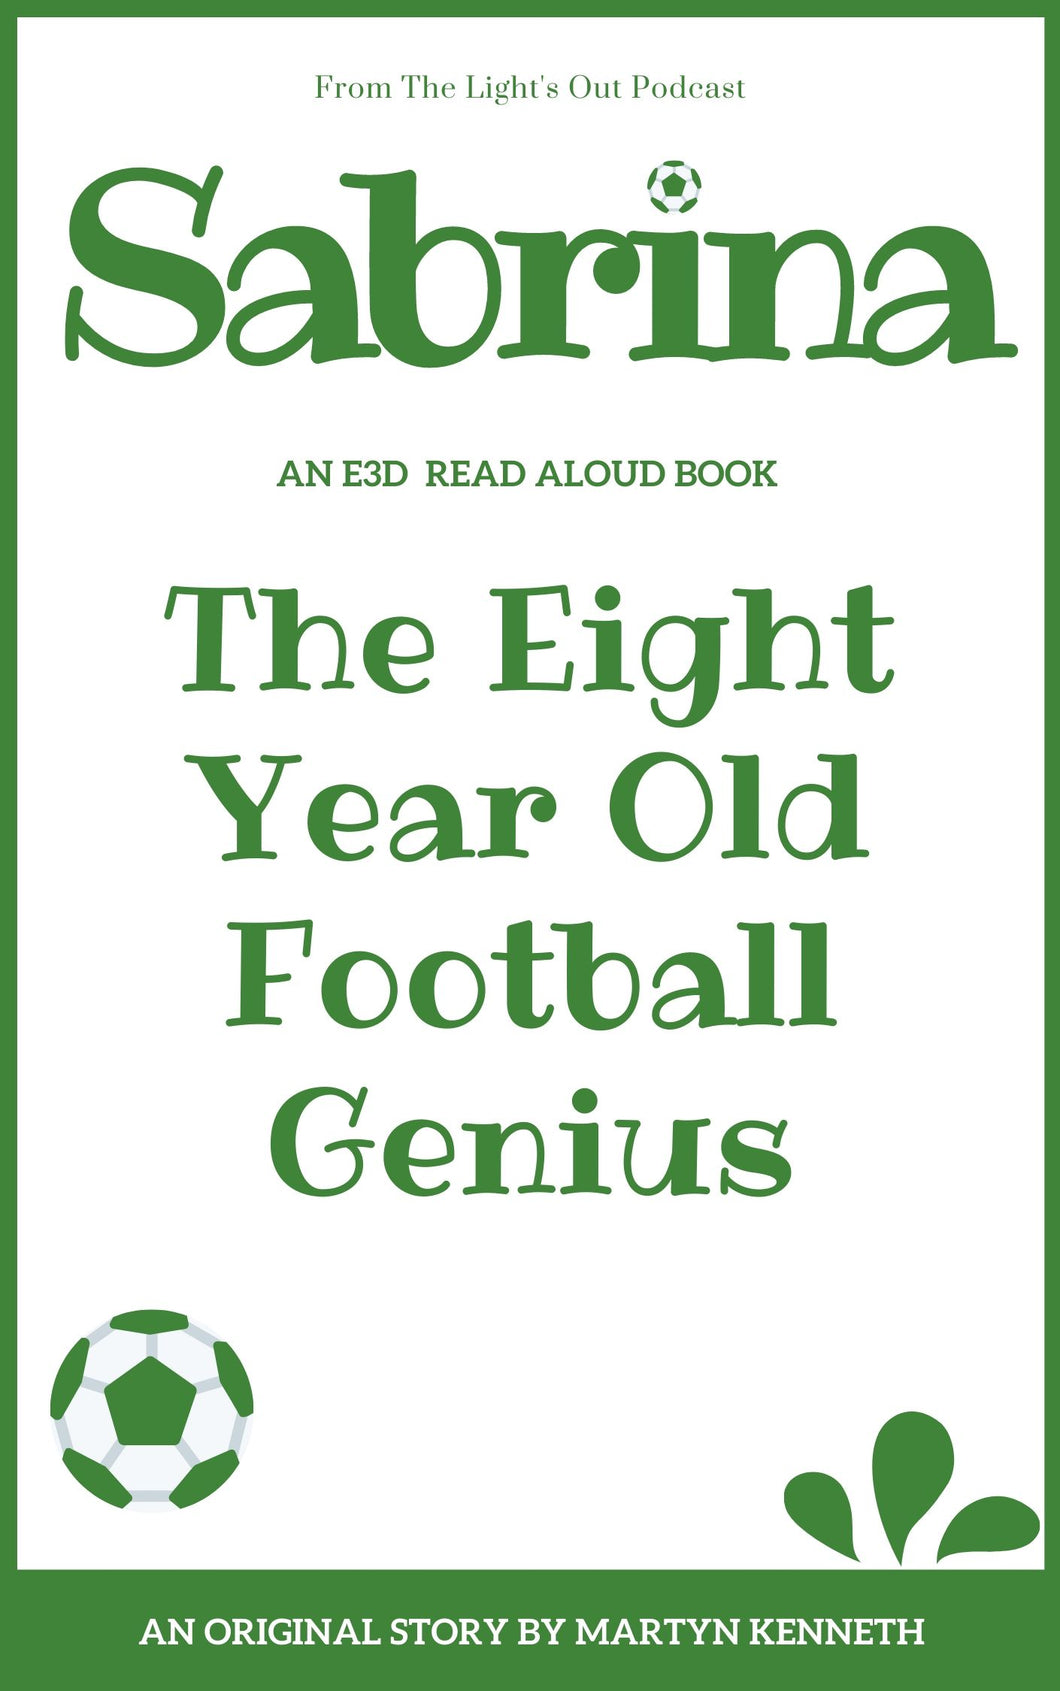 Sabrina the 8 Year Old Football Genius by Martyn Kenneth (2021 free books for 2021)